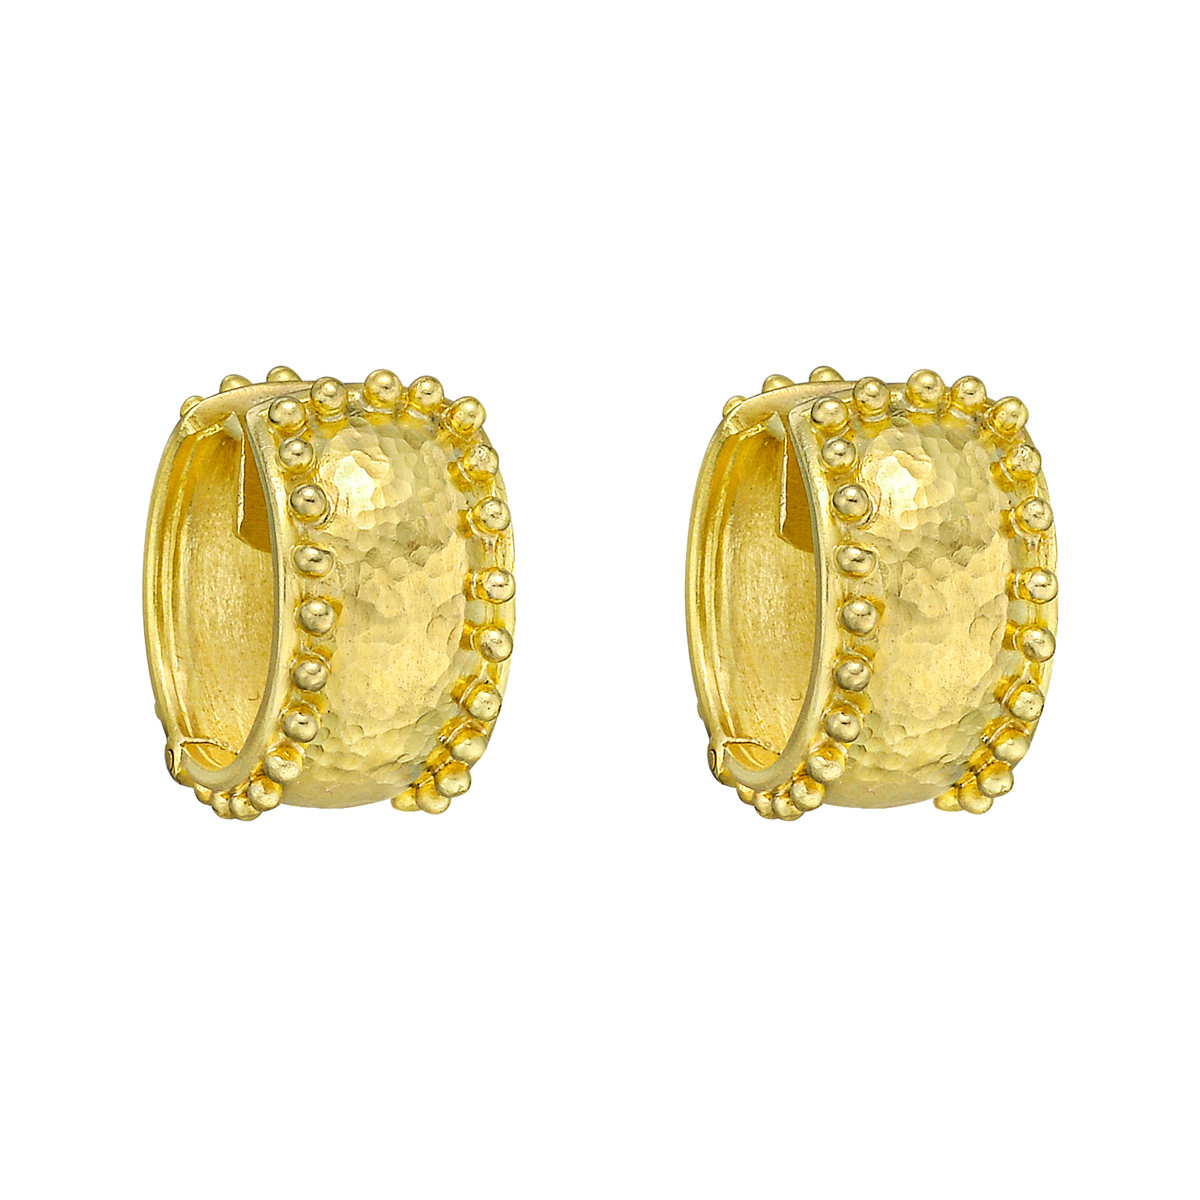 19k Yellow Gold Granulated Hoop Earrings